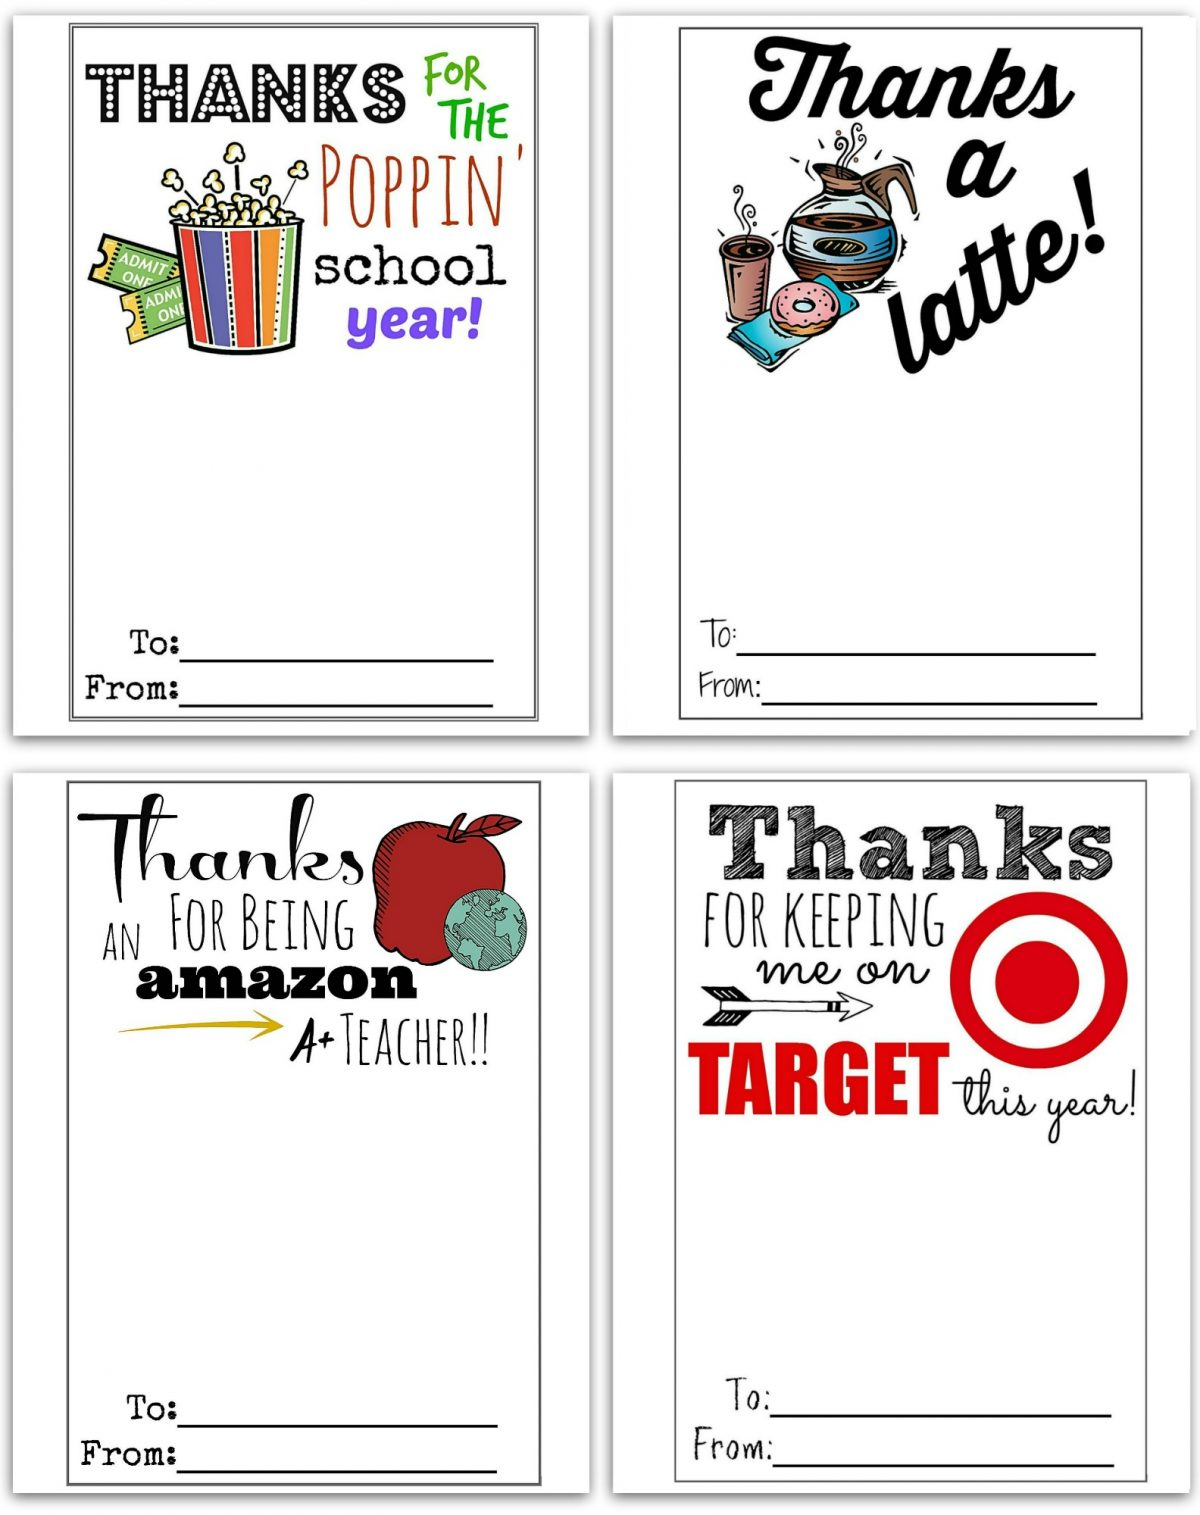 It's just a photo of Free Printable Cards for Teachers intended for pencil